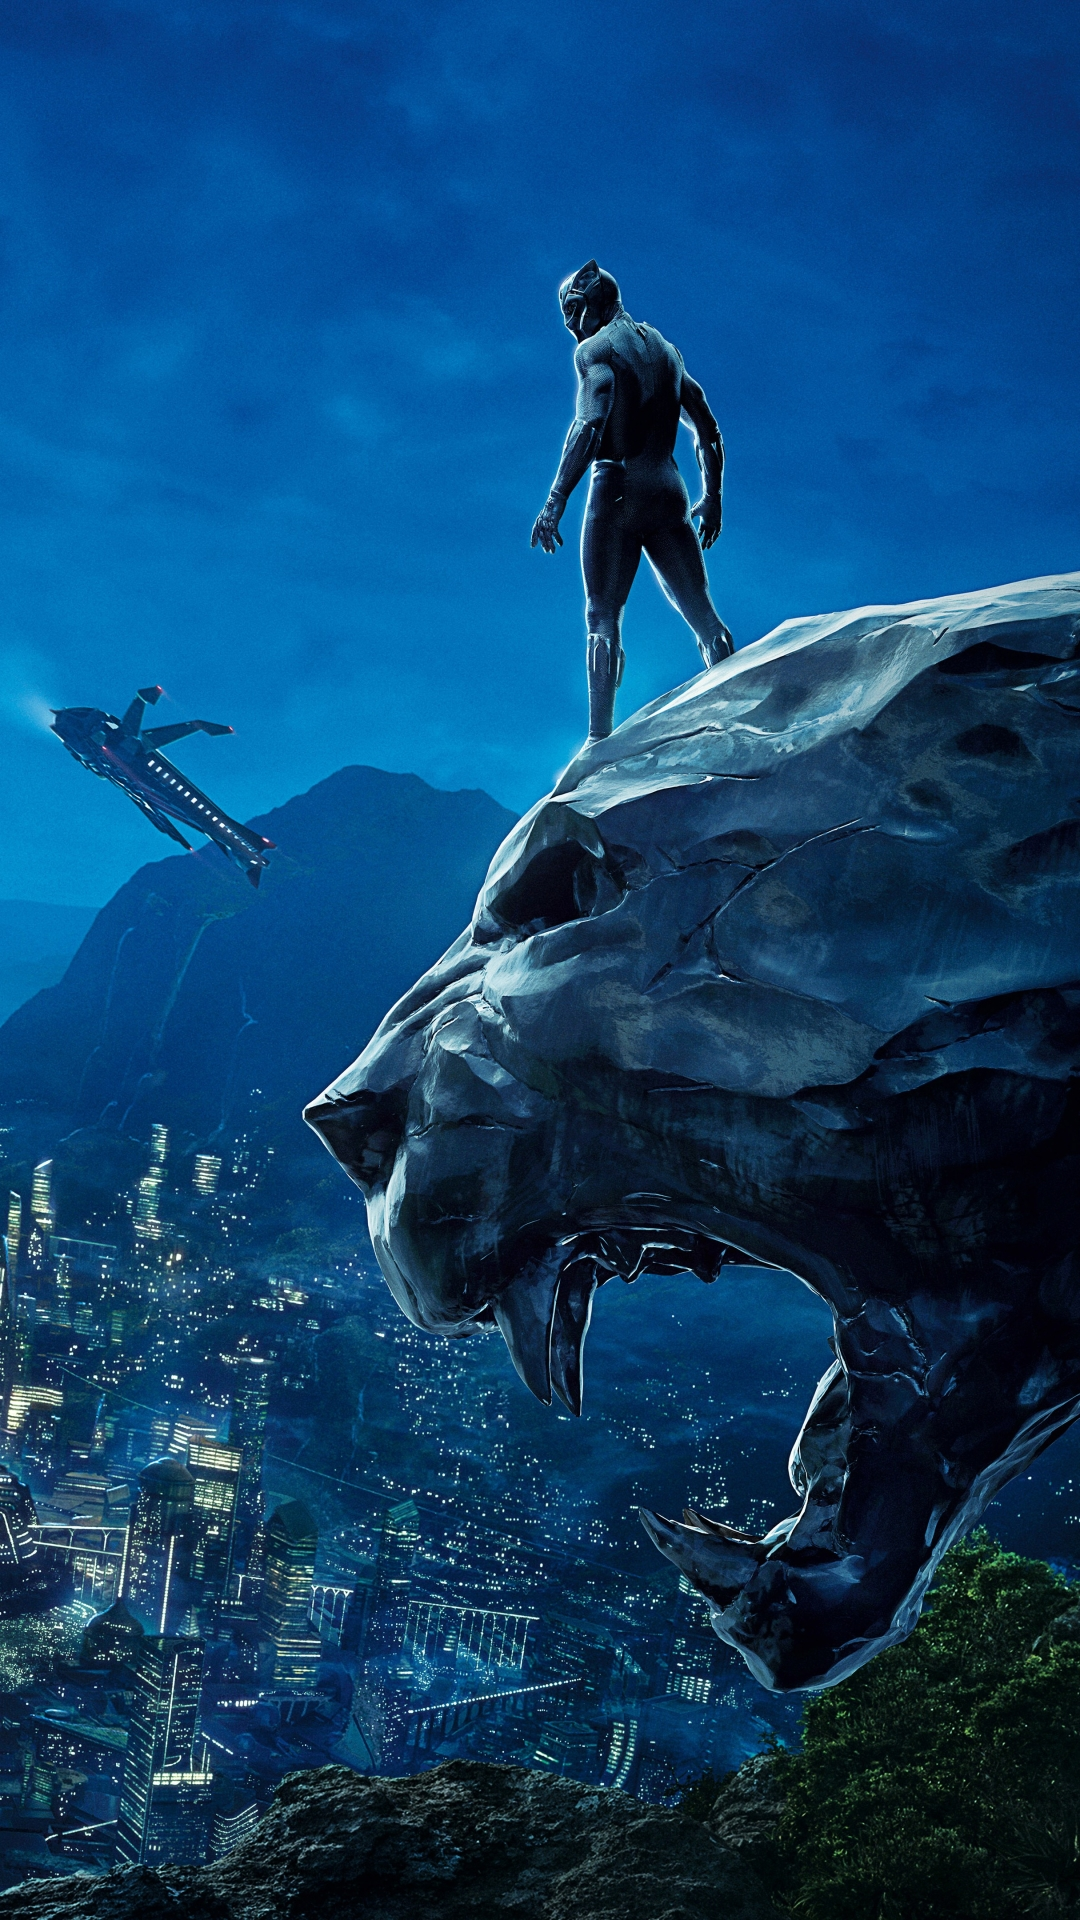 Live Iphone X Wallpaper From Commercial Movie Black Panther 1080x1920 Wallpaper Id 710577